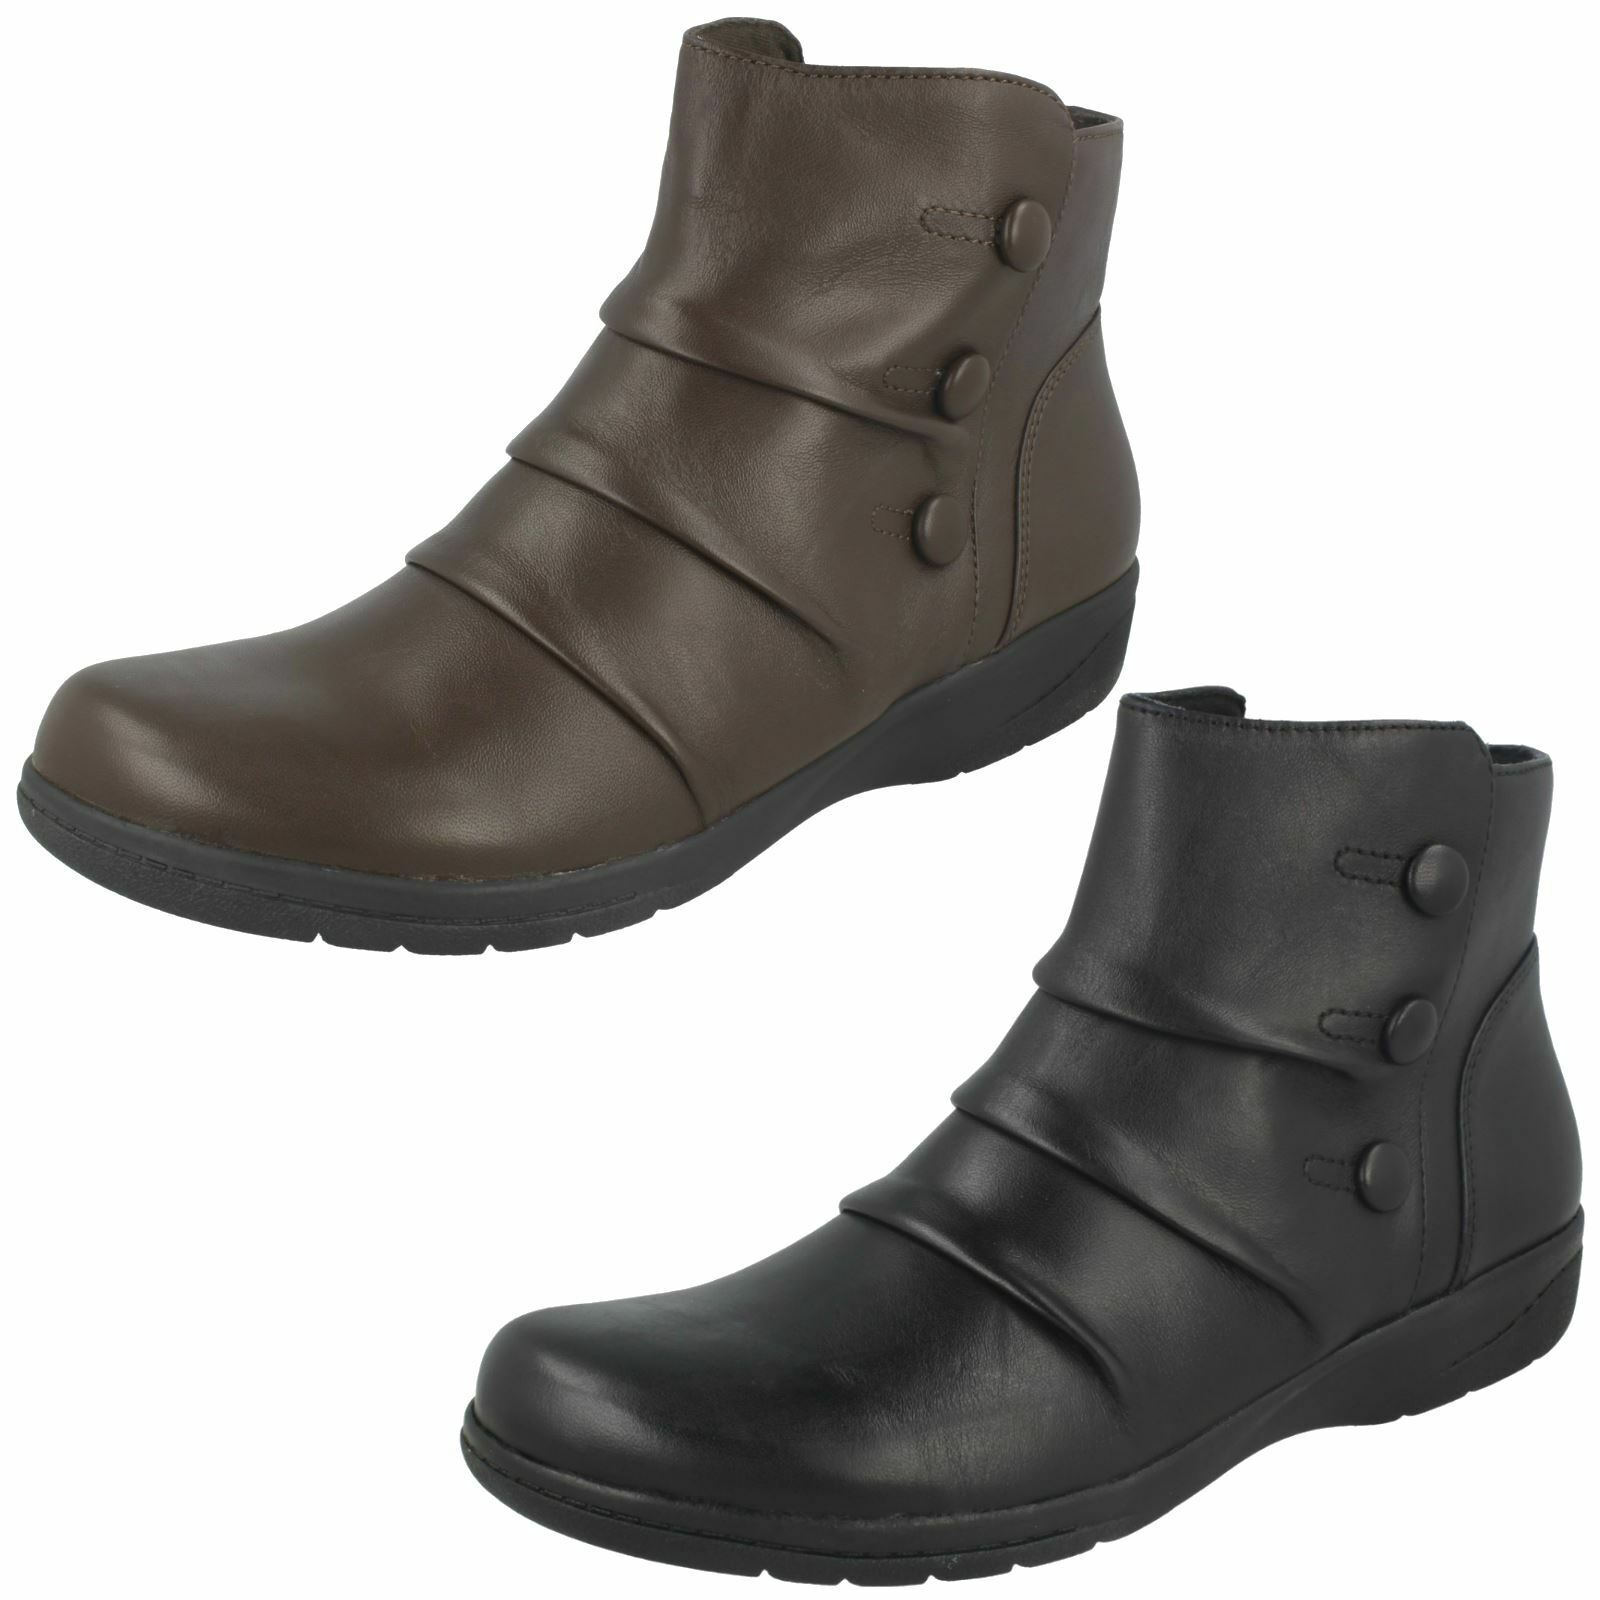 Ladies Clarks Ankle Boots With Button Detail 'Cheyn Anne'